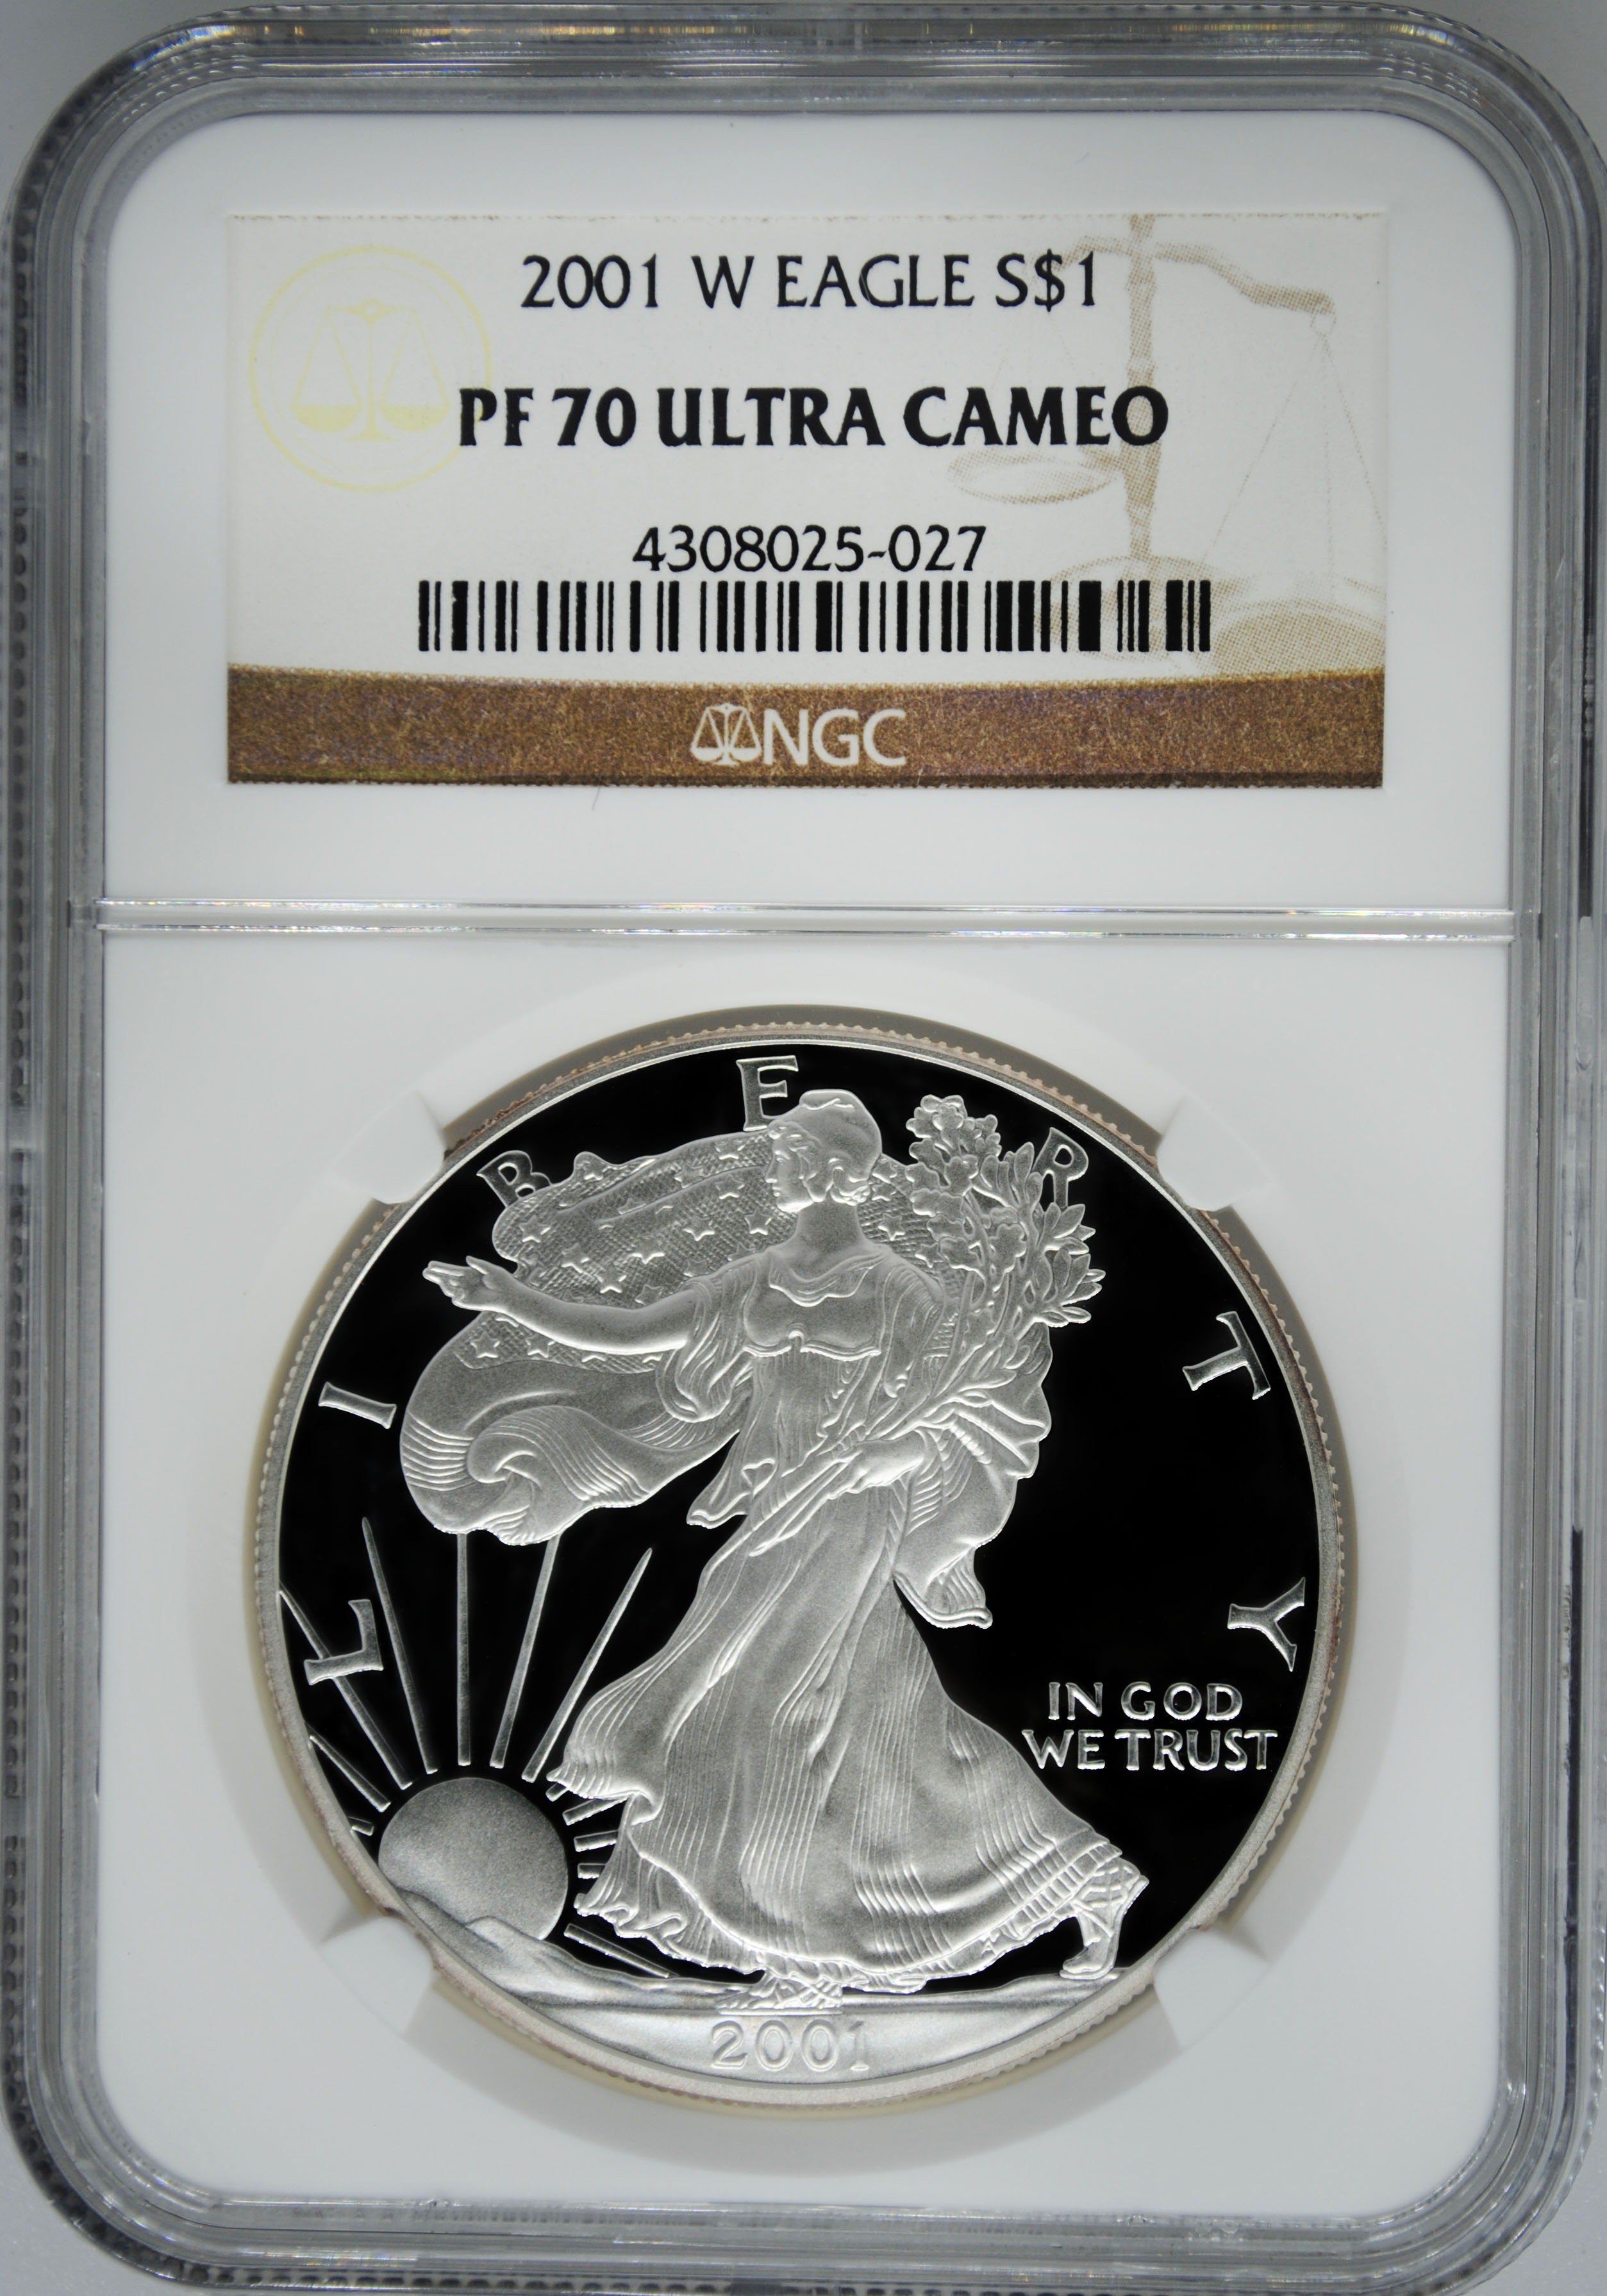 2001 W Ngc Pf70 Ultra Cameo Proof Silver Eagle